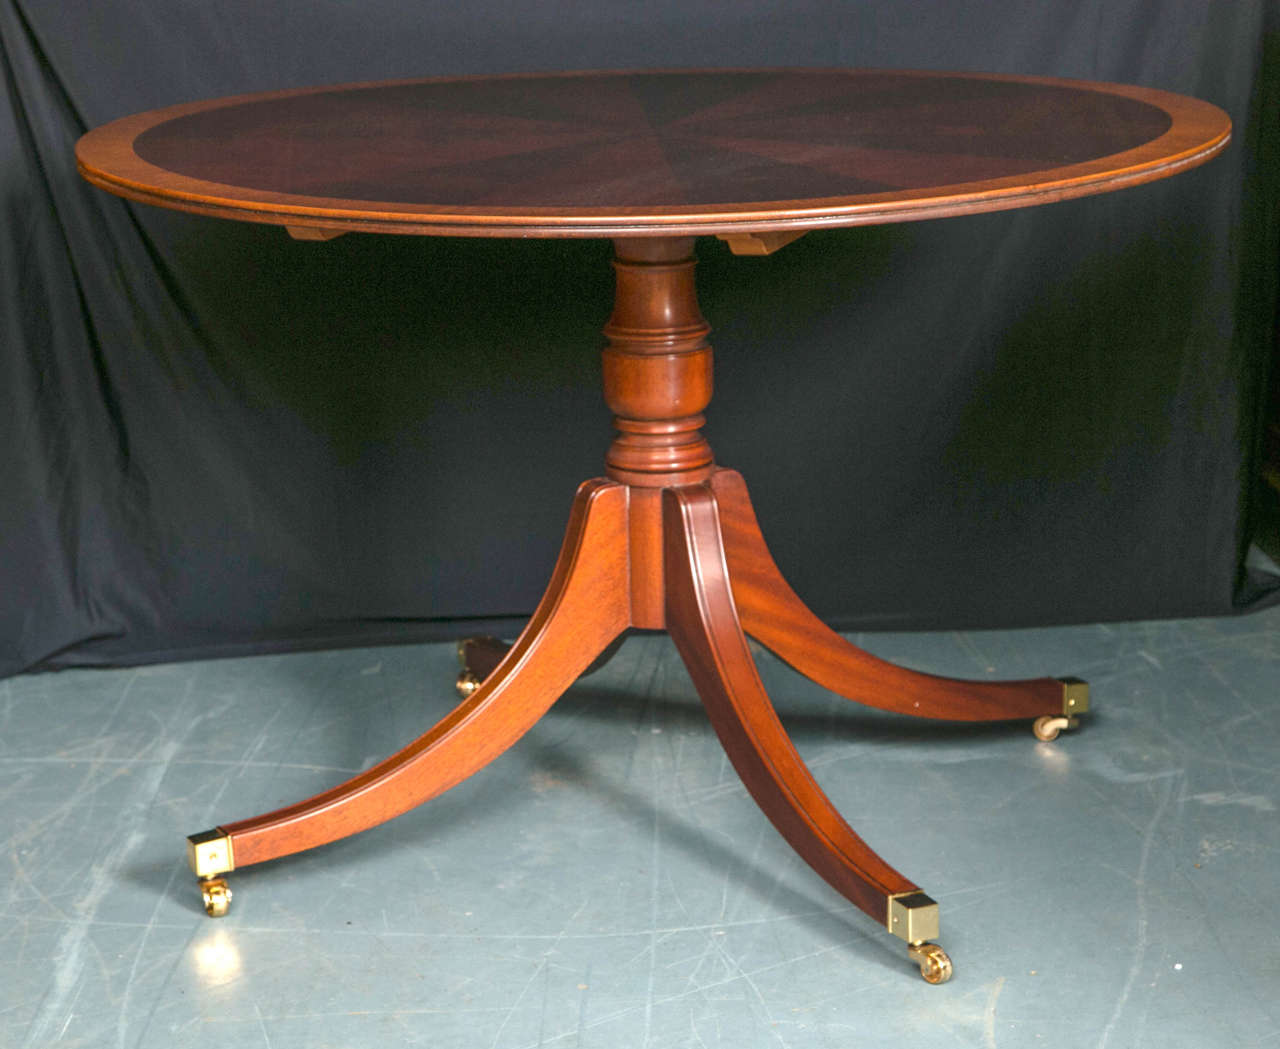 Created in the style of tables from the 18th century, this circular, mahogany starburst table is supported by a single column pedestal with four splay legs ending in brass toe caps and casters. Banded in satinwood and having a reeded edge, this